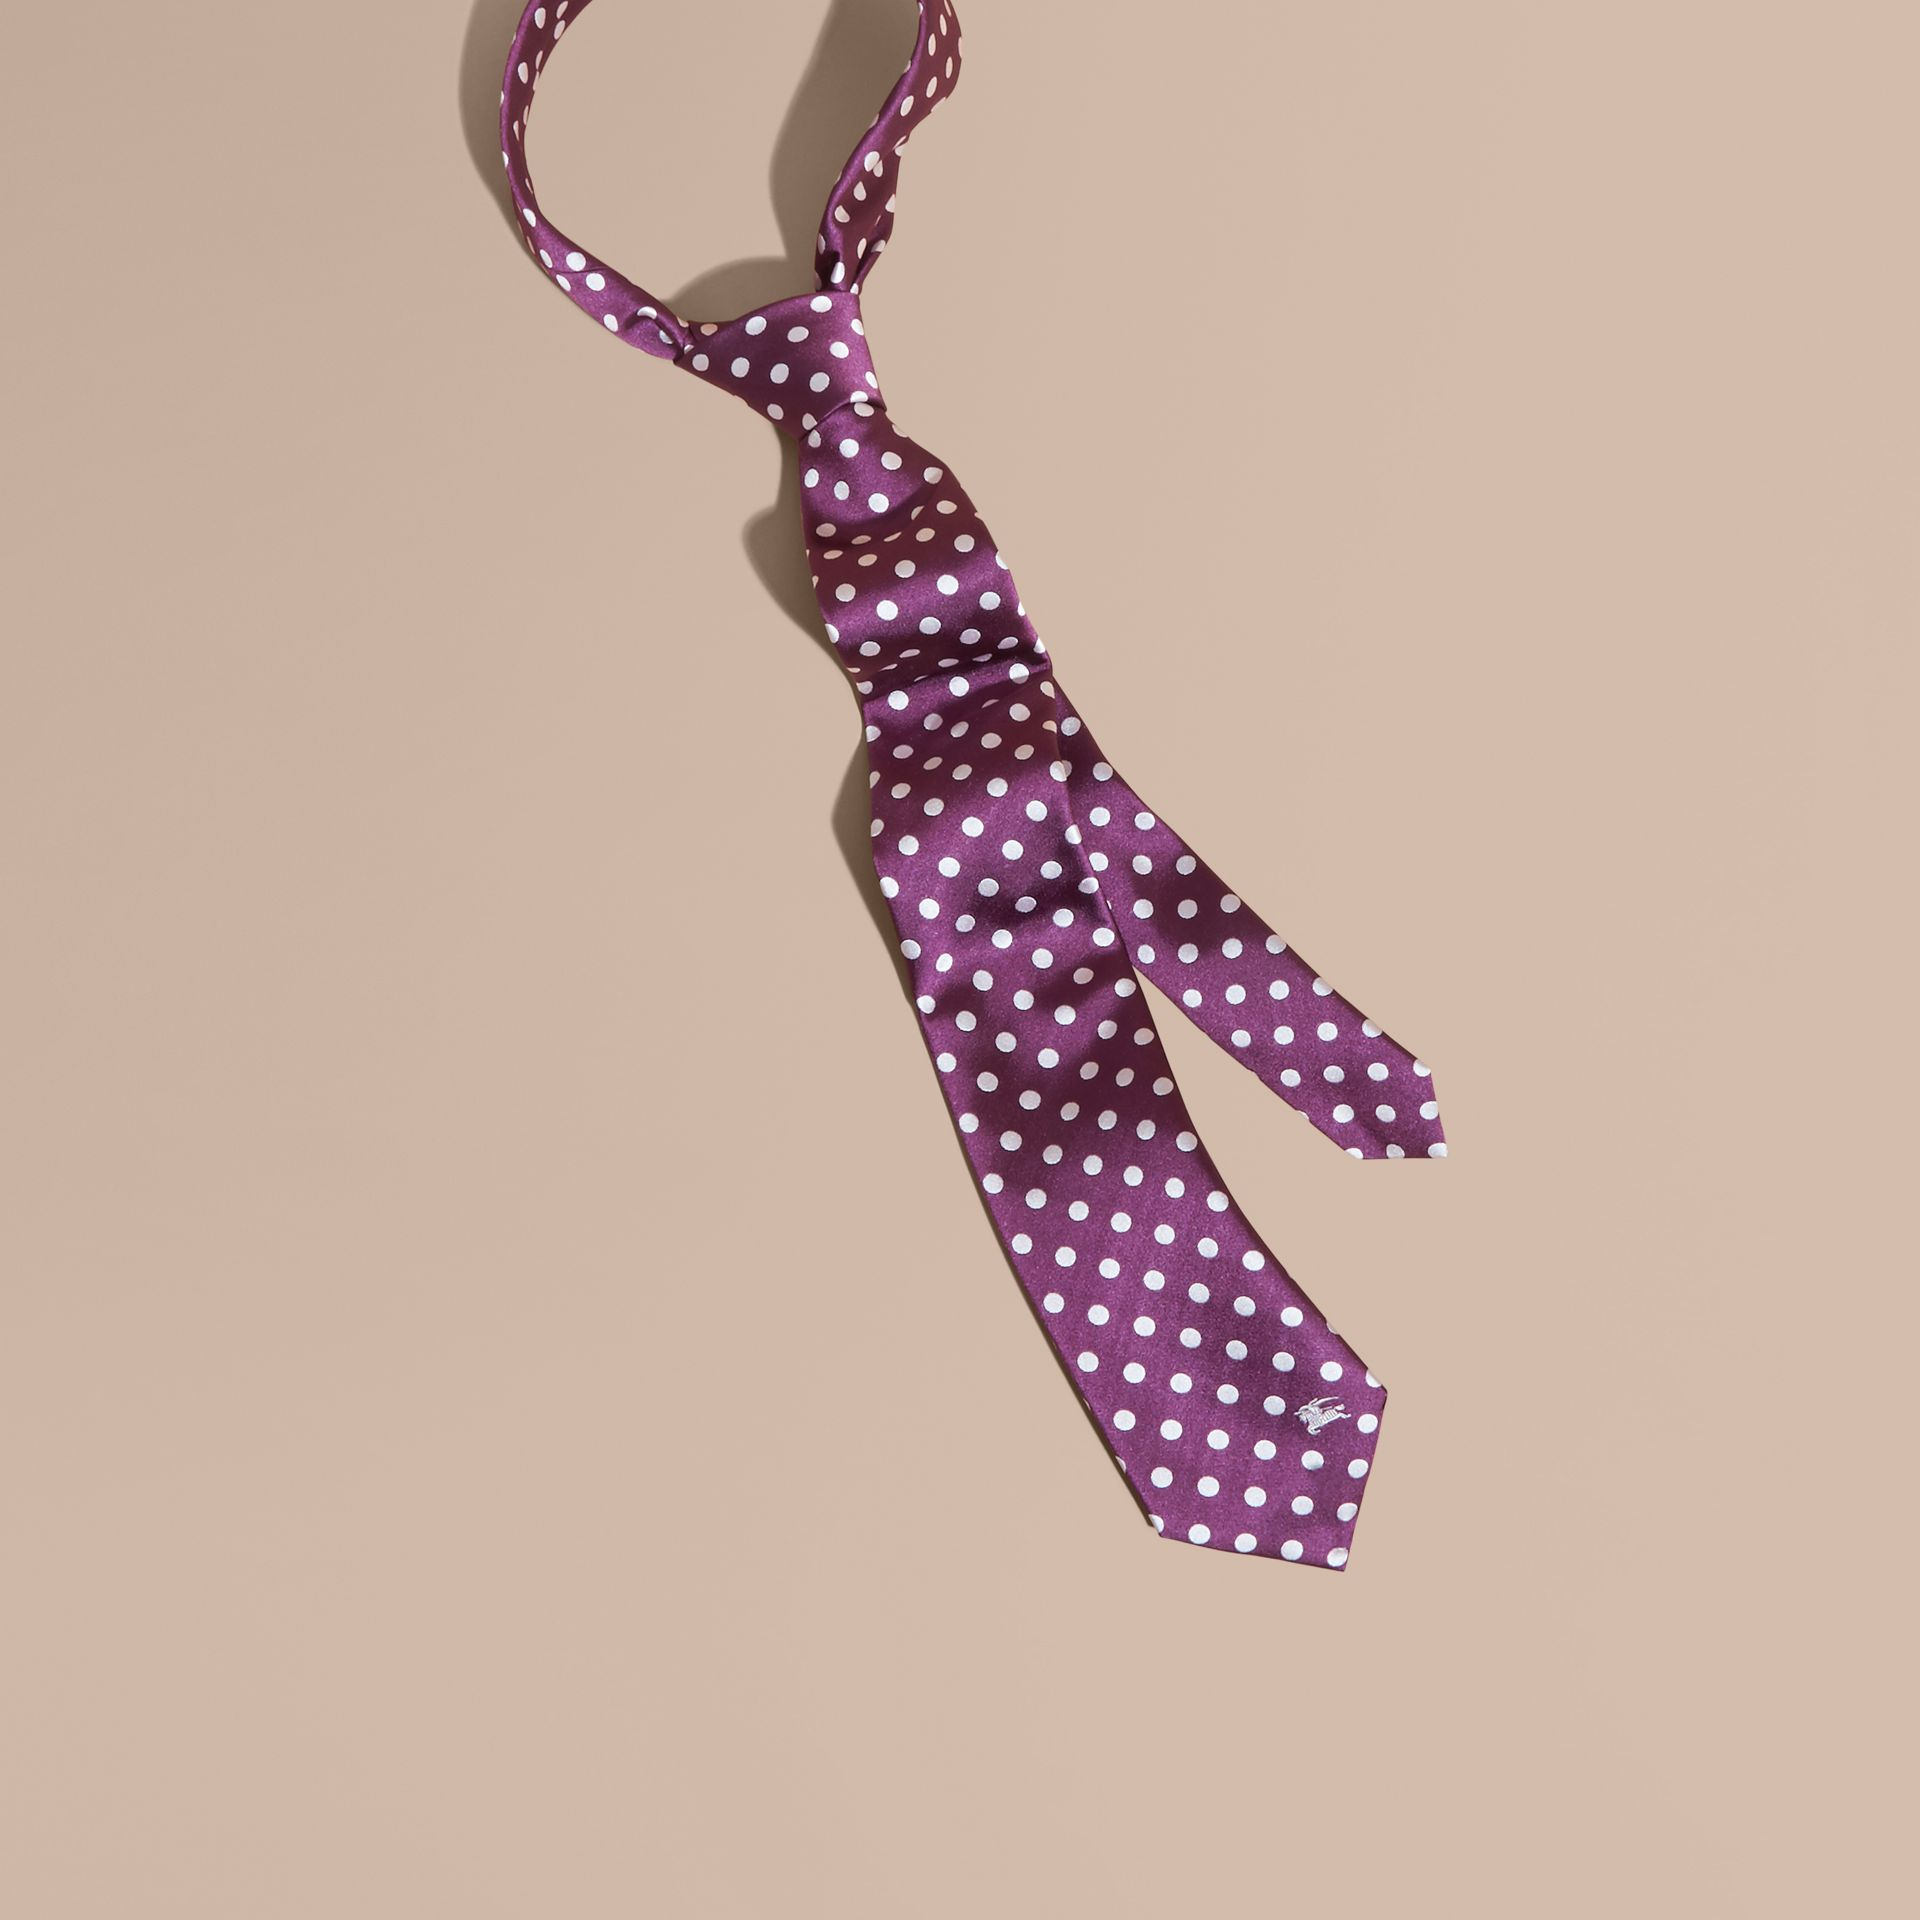 Modern Cut Polka-dot Silk Jacquard Tie in Purple Black - Men | Burberry - gallery image 1